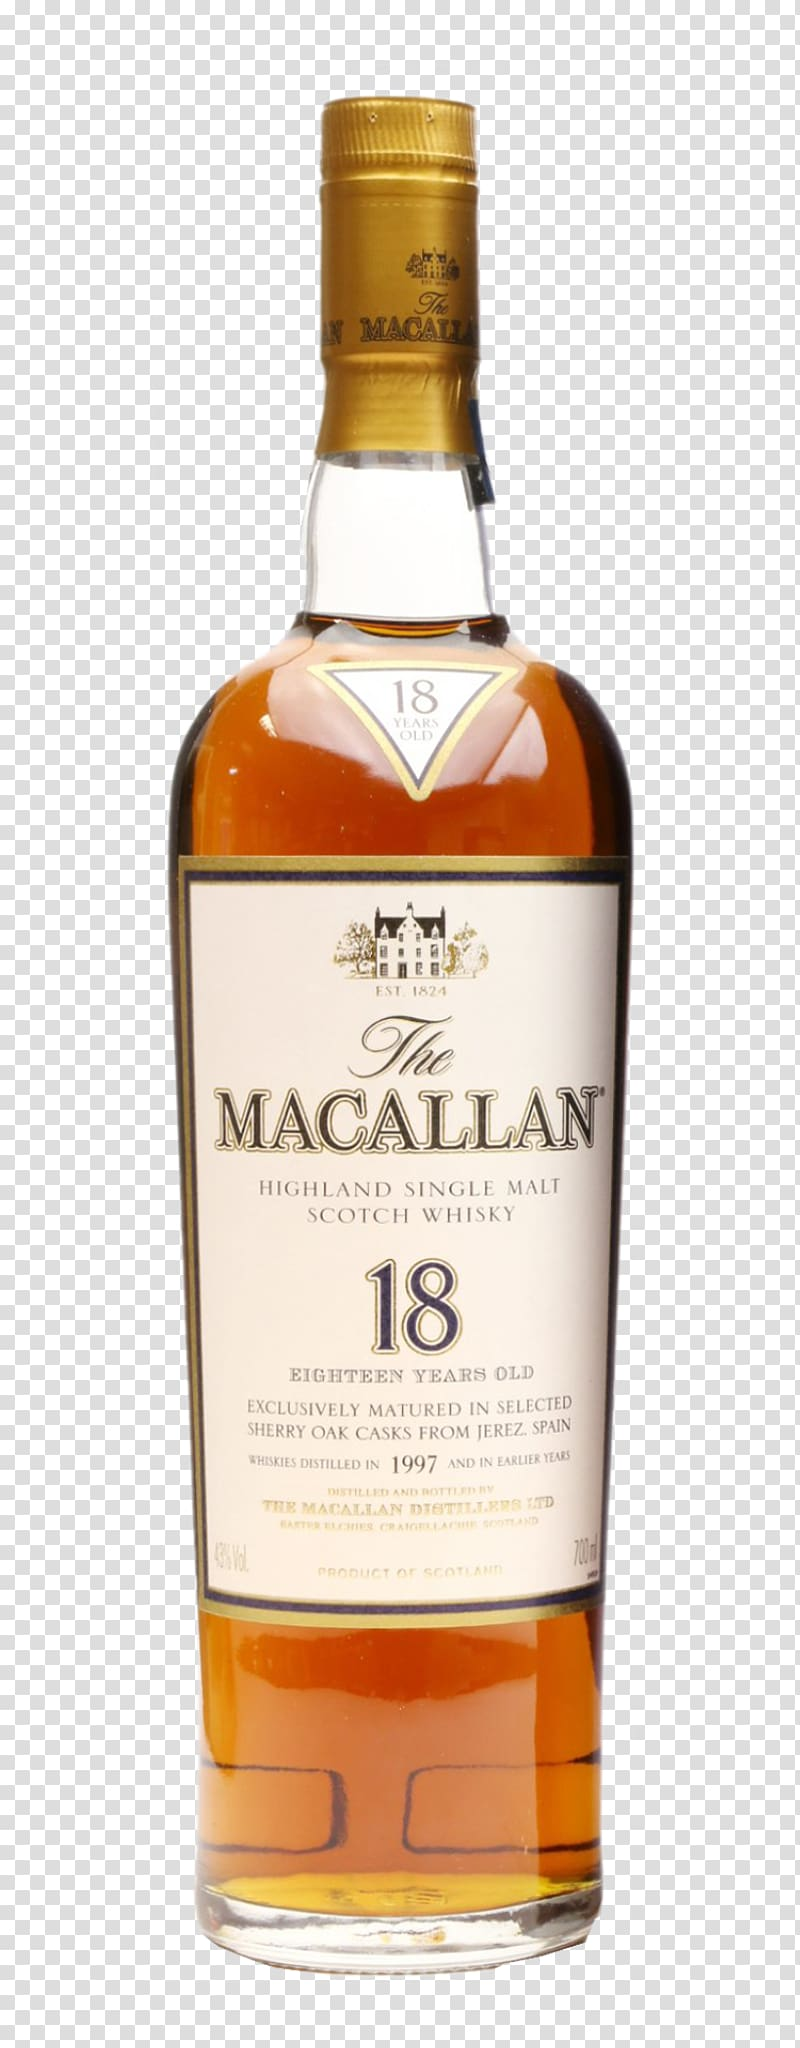 Macallan transparent background PNG cliparts free download.